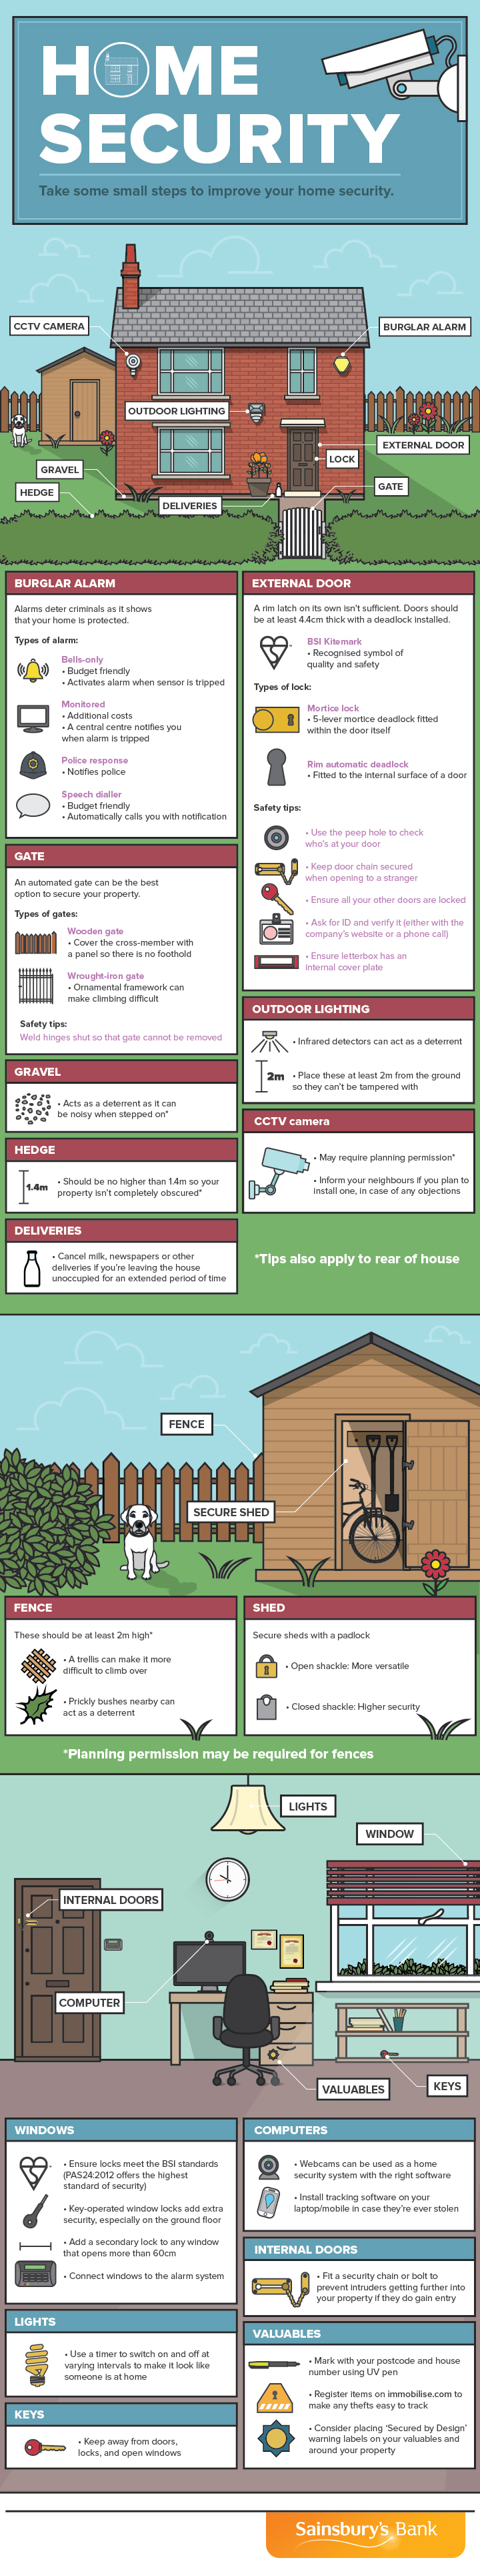 Home Security Infographic | St Locks